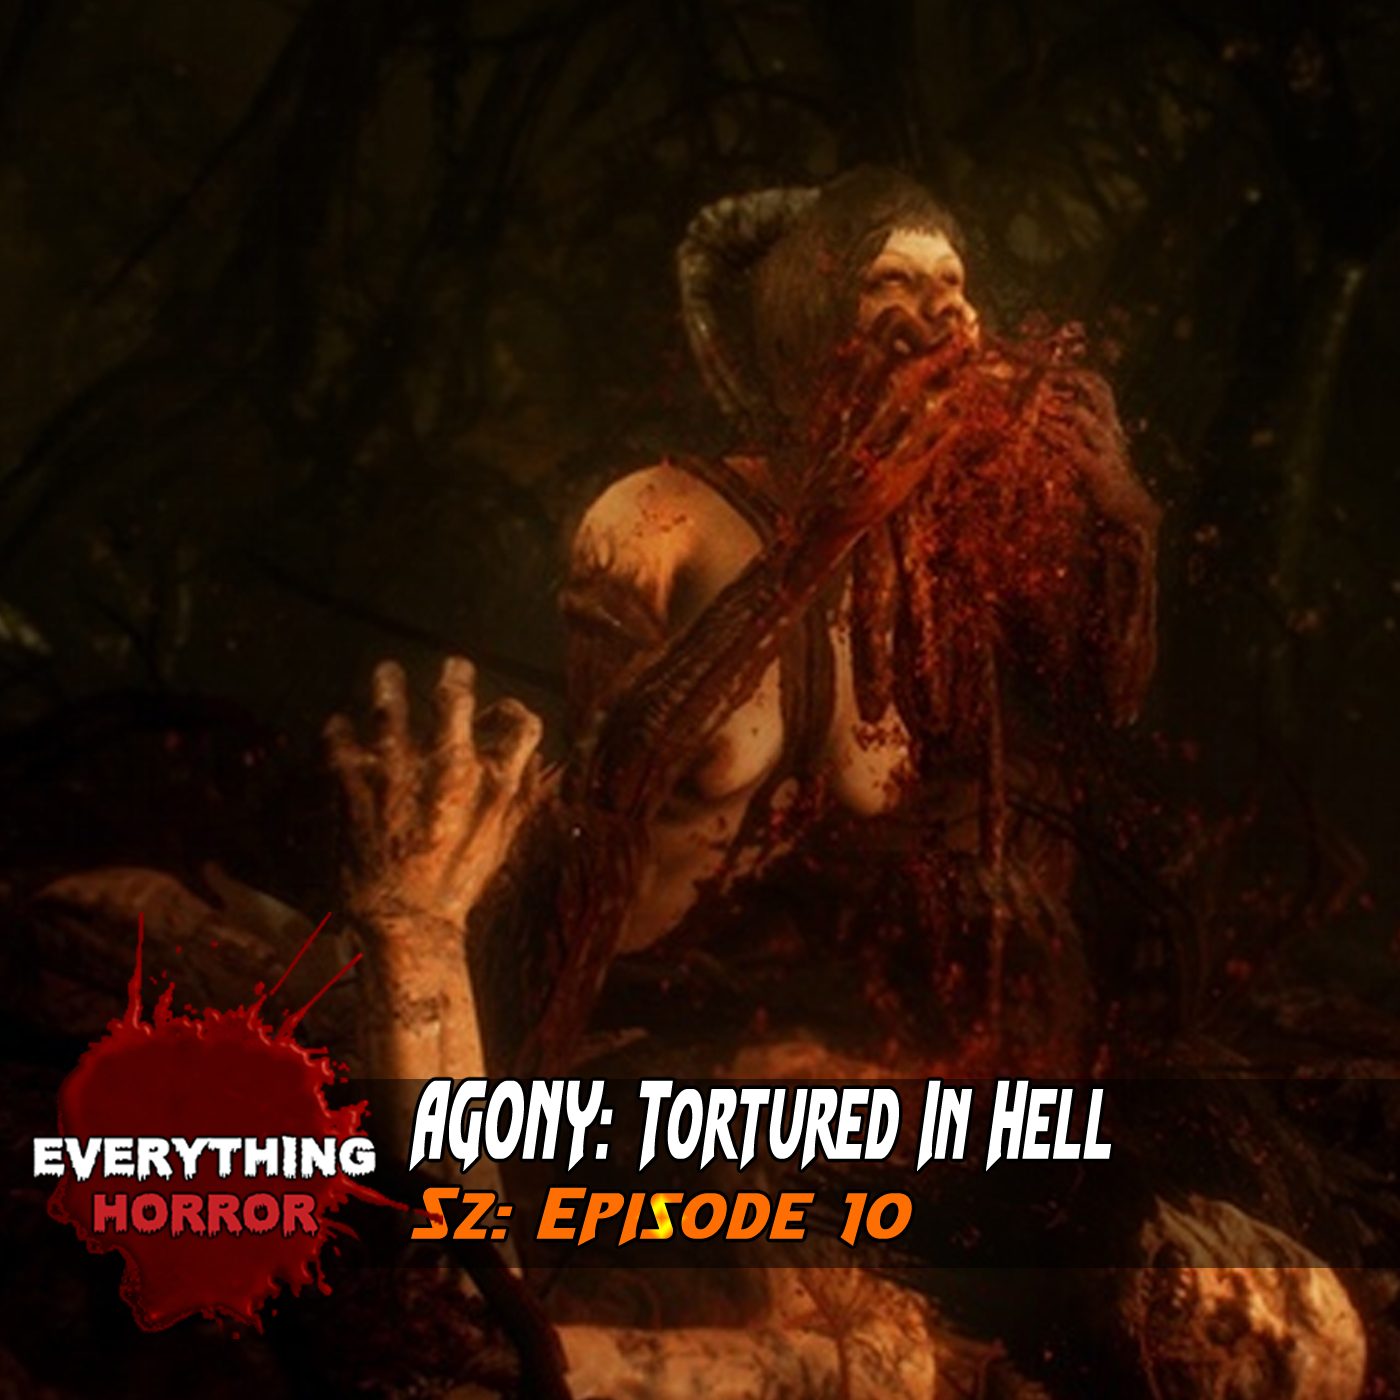 S2: Ep 10. AGONY: Tortured In Hell